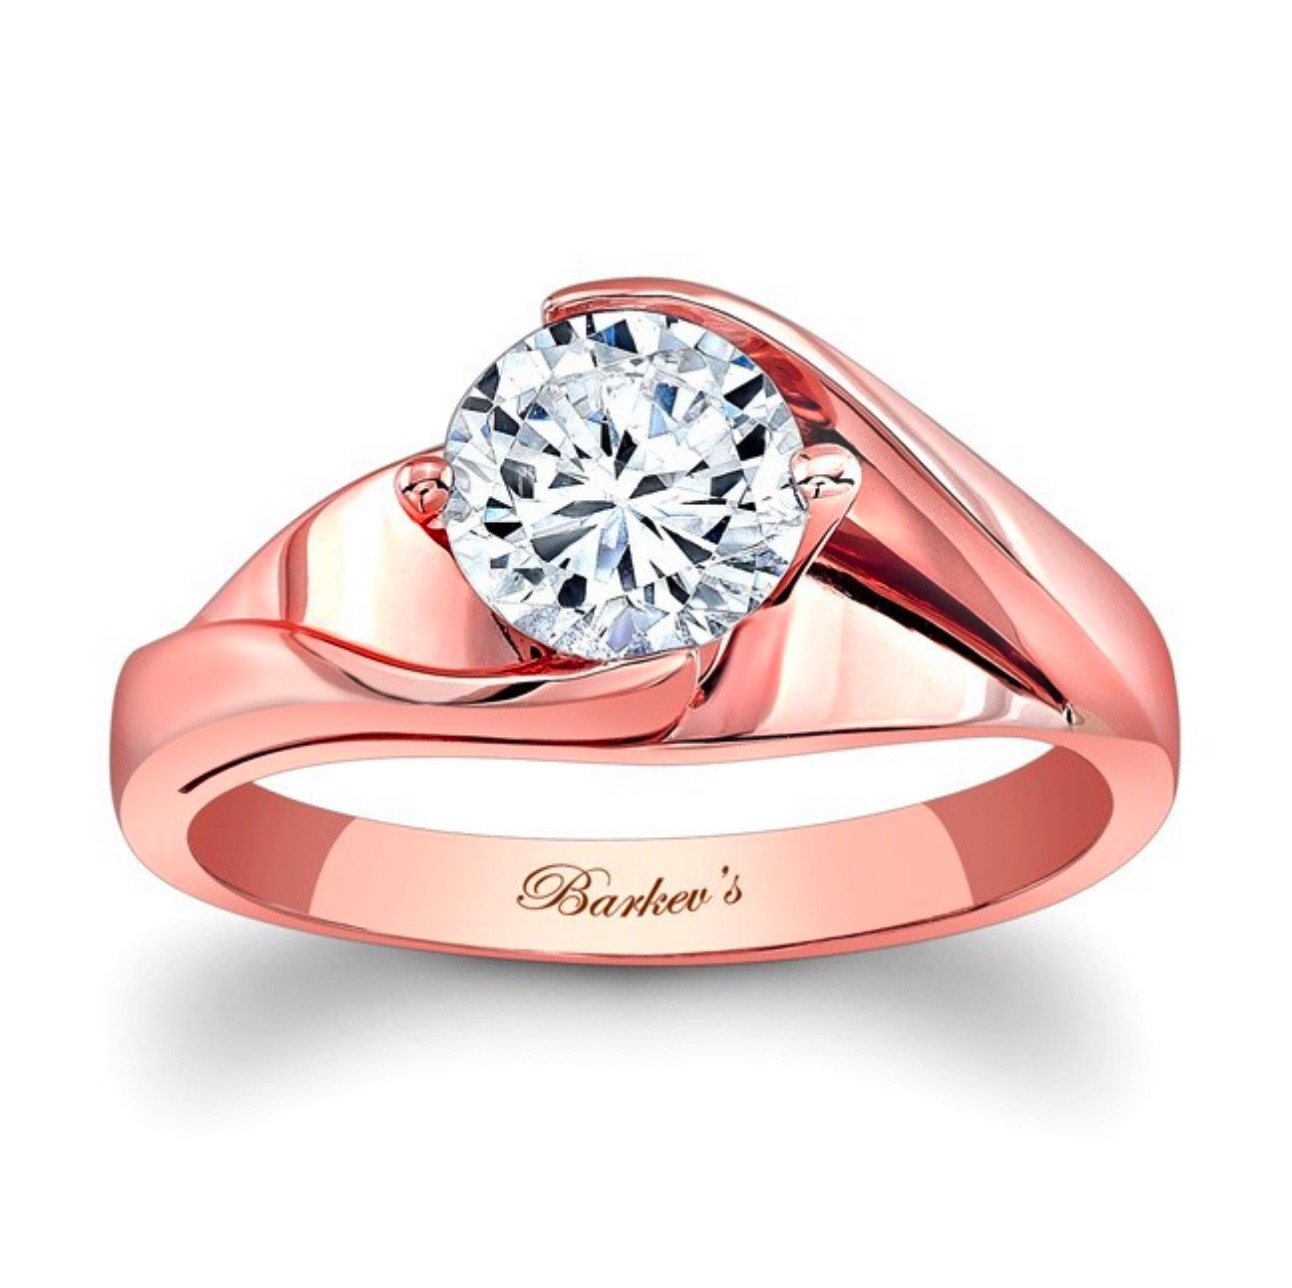 Diamond Engagement Ring - Barkev Rose Gold Solitaire